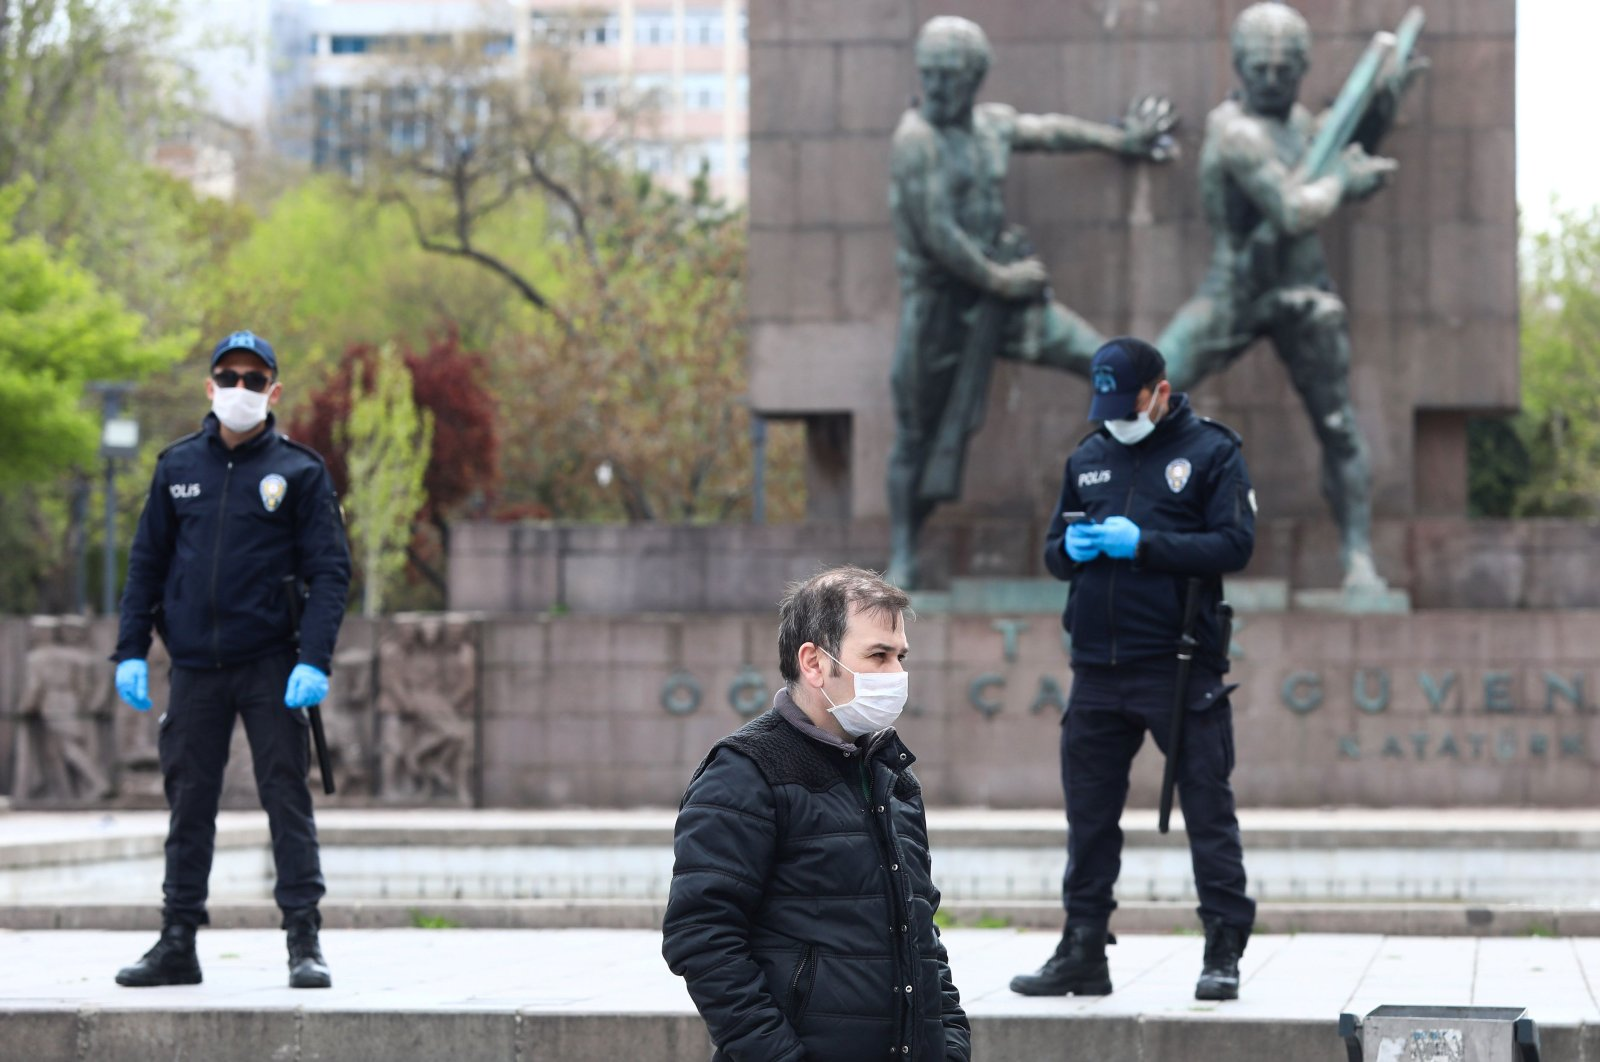 A man wearing a protective facemask walks past two police officers in Ankara, Thursday, April 16, 2020. (AFP Photo)